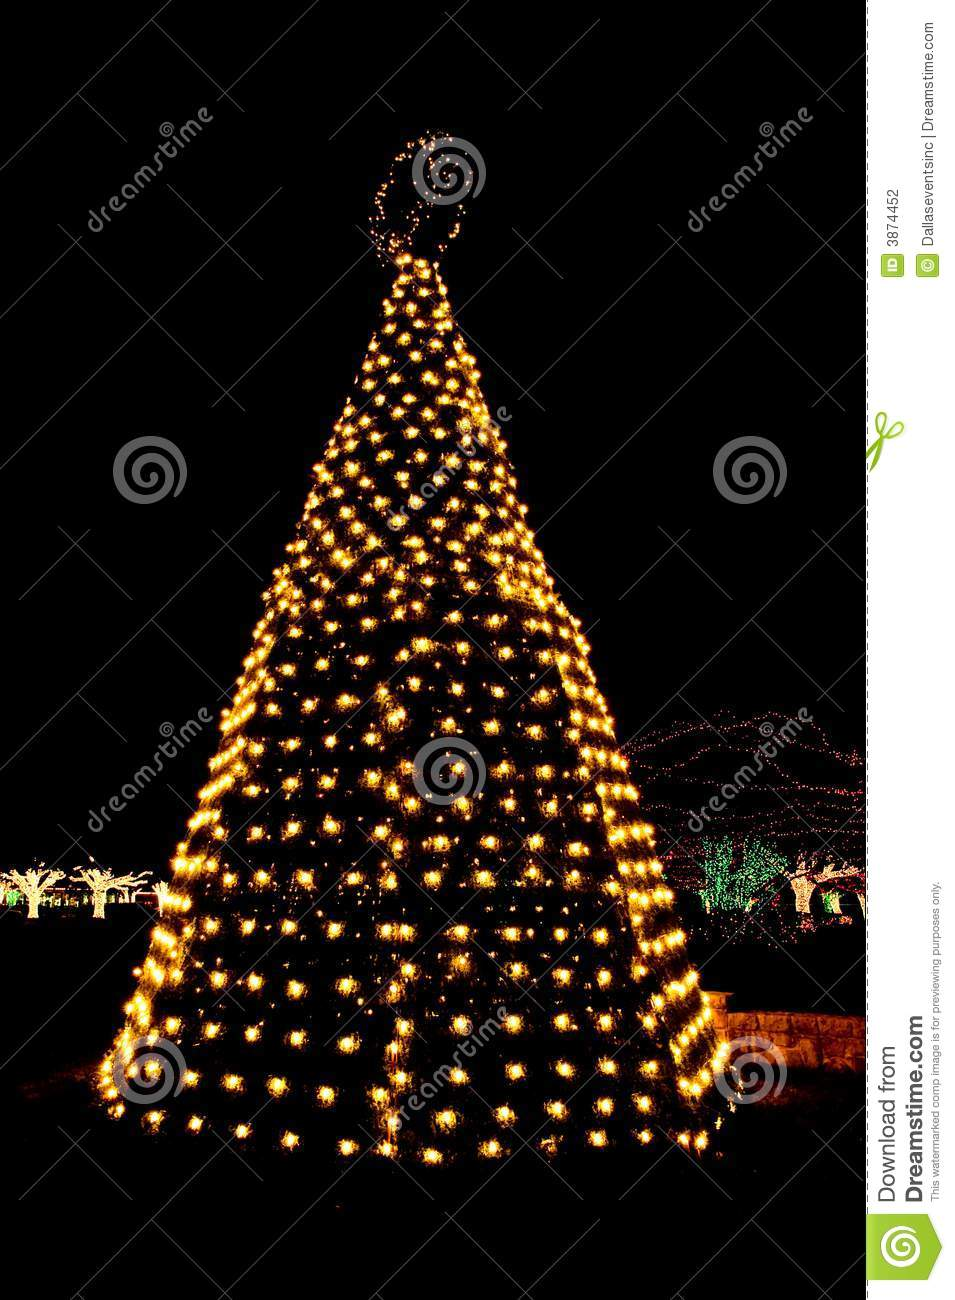 Outdoor Christmas Tree With Lights.Outdoor Christmas Tree Lights Stock Photo Image Of Gold Celebrate